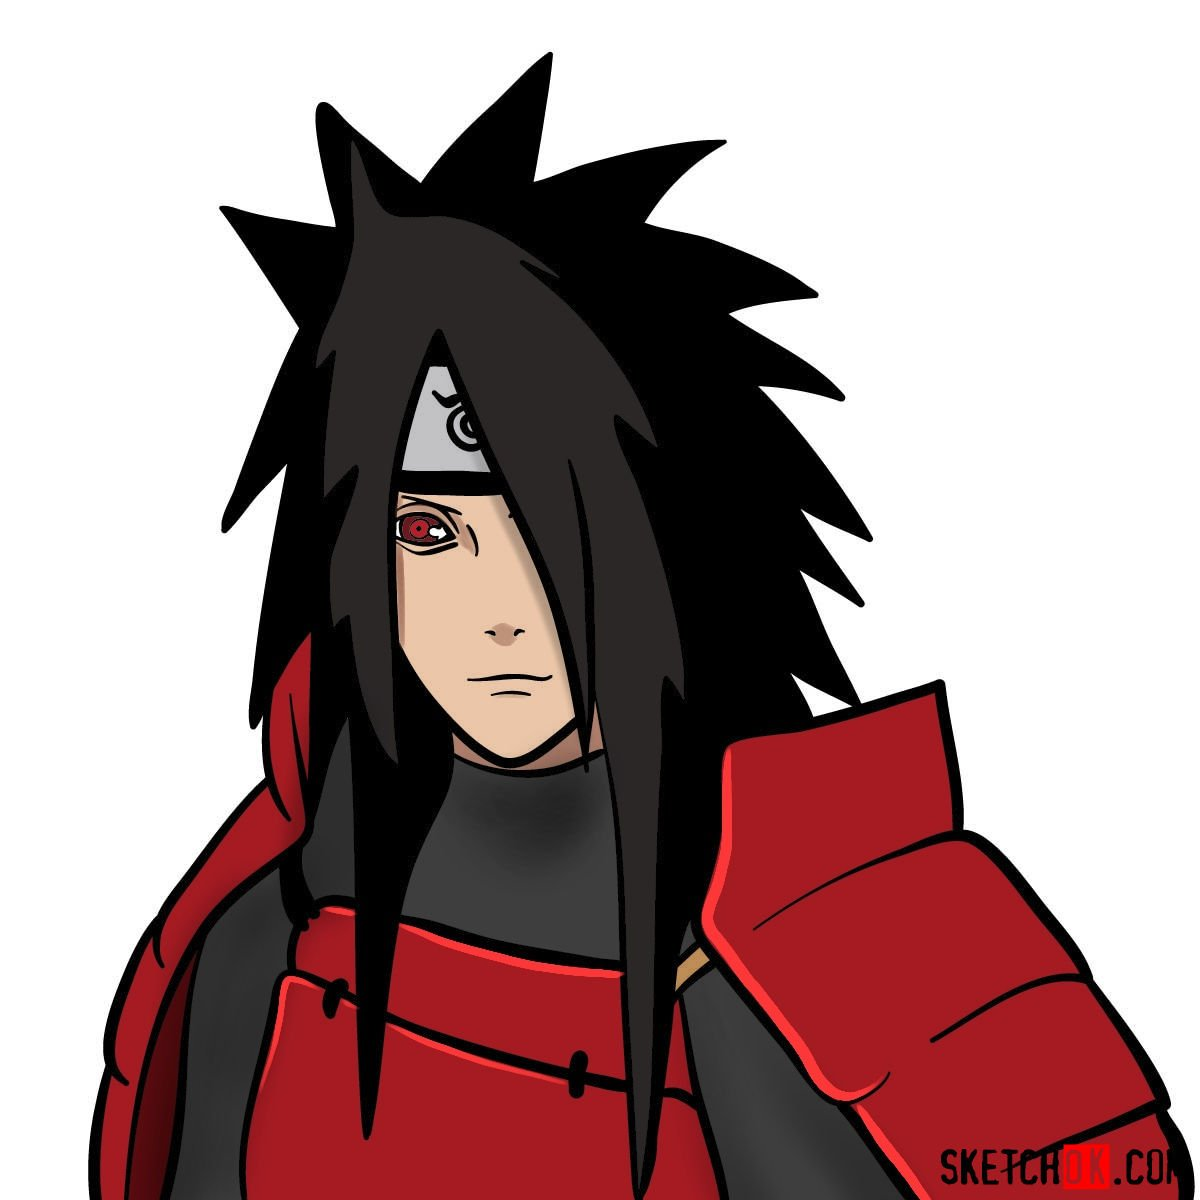 How to draw the face of Madara Uchiha (Naruto)